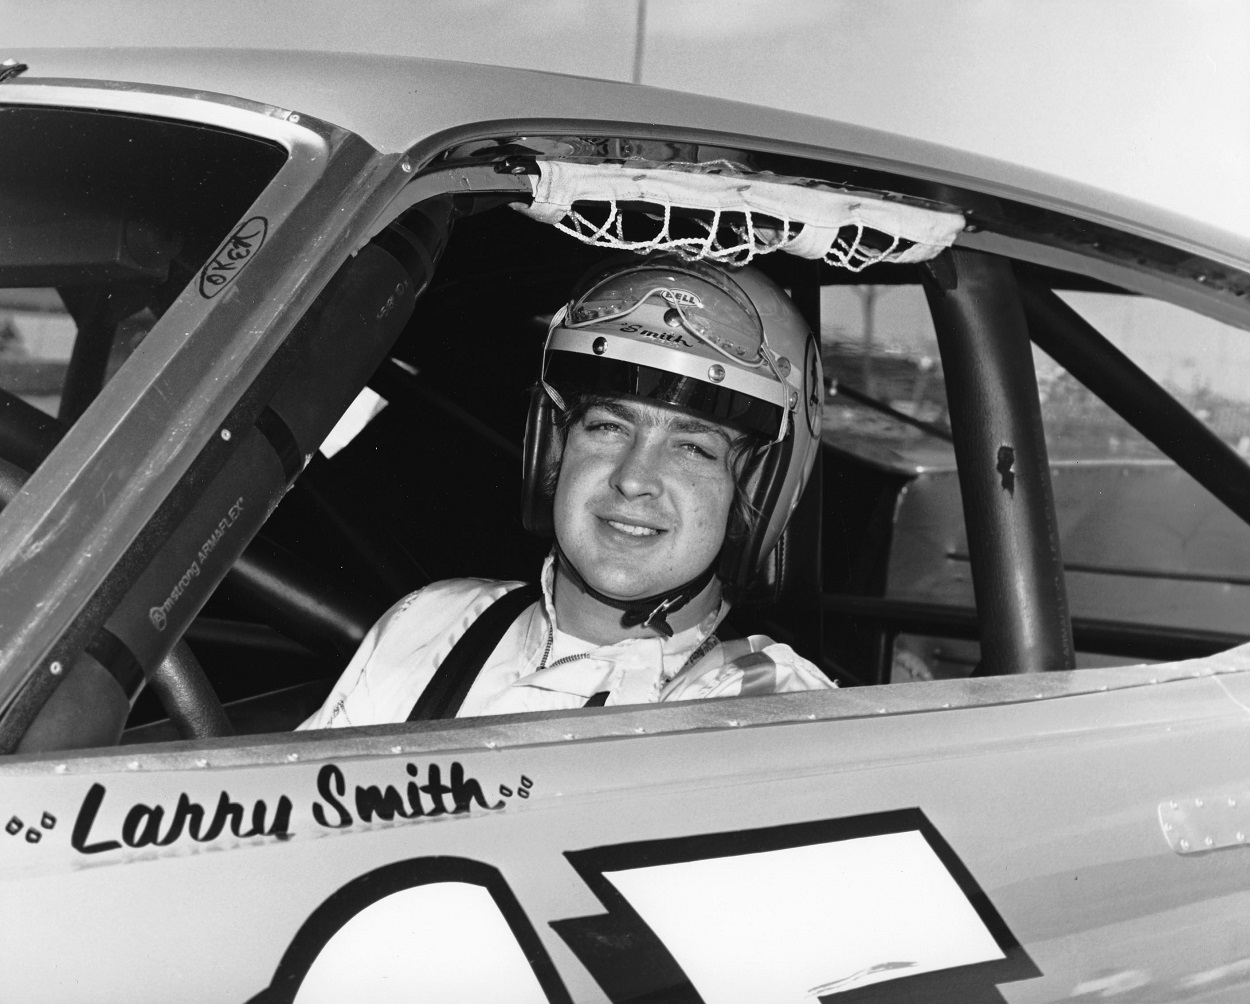 1972 NASCAR Rookie of the Year Larry Smith